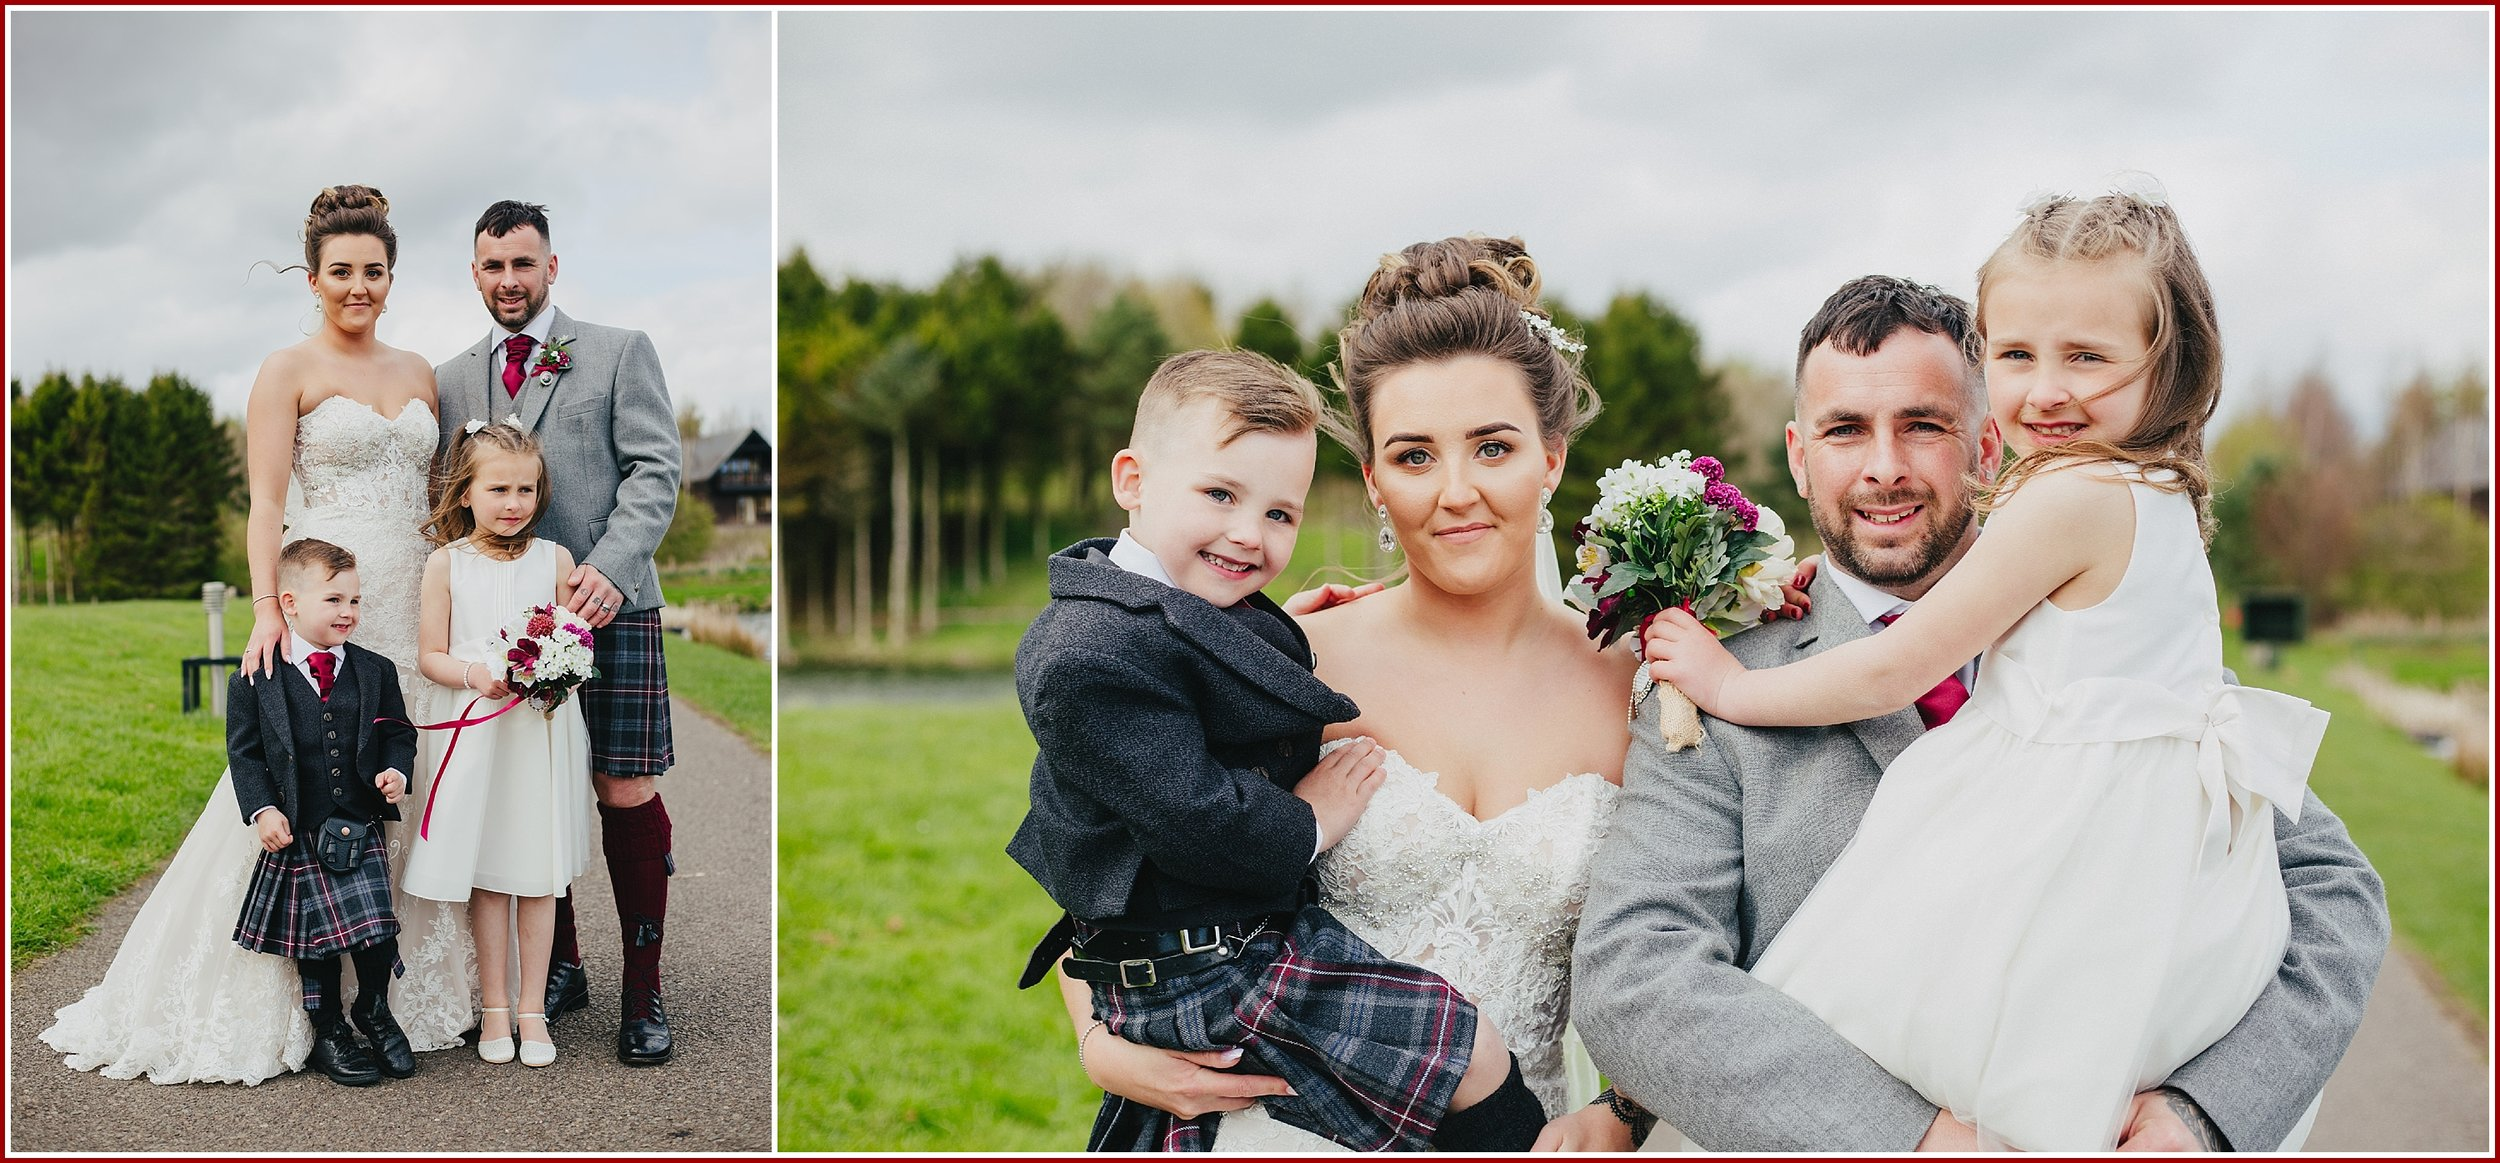 Kirsty_Brown_Wedding_Photography_0088.jpg